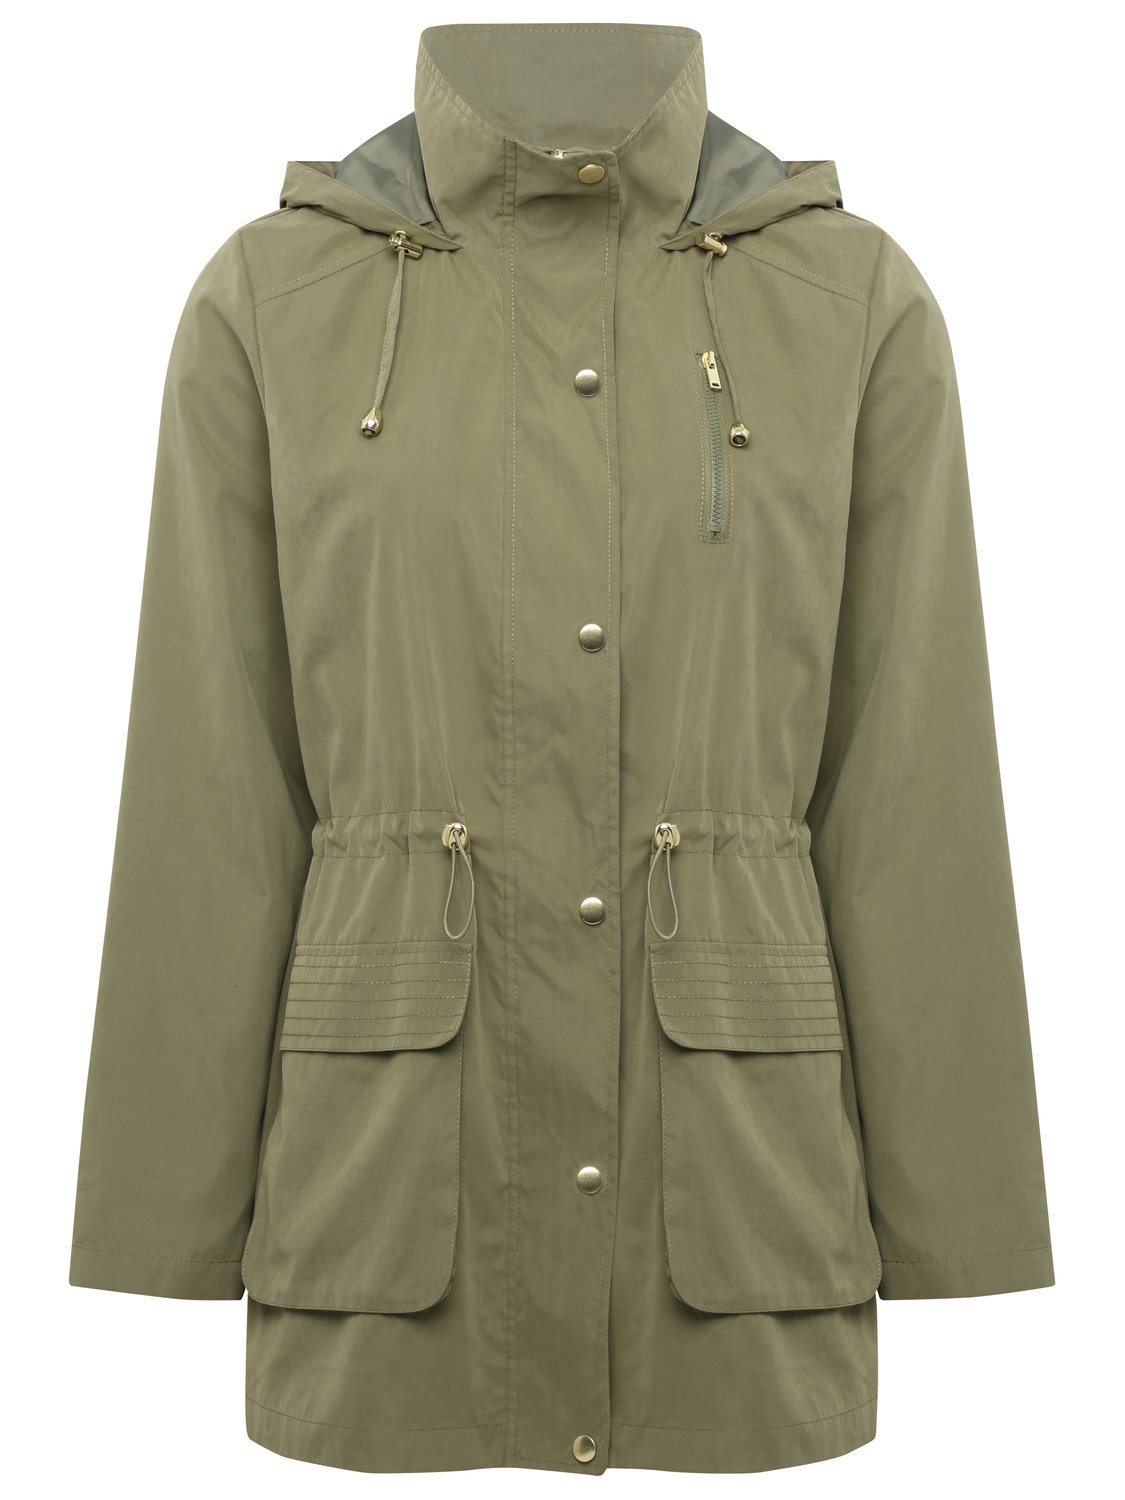 Women's Ladies Long Sleeve Hooded Front Pocket Draw Cord Waist Lightweight Casual Parka Jacket